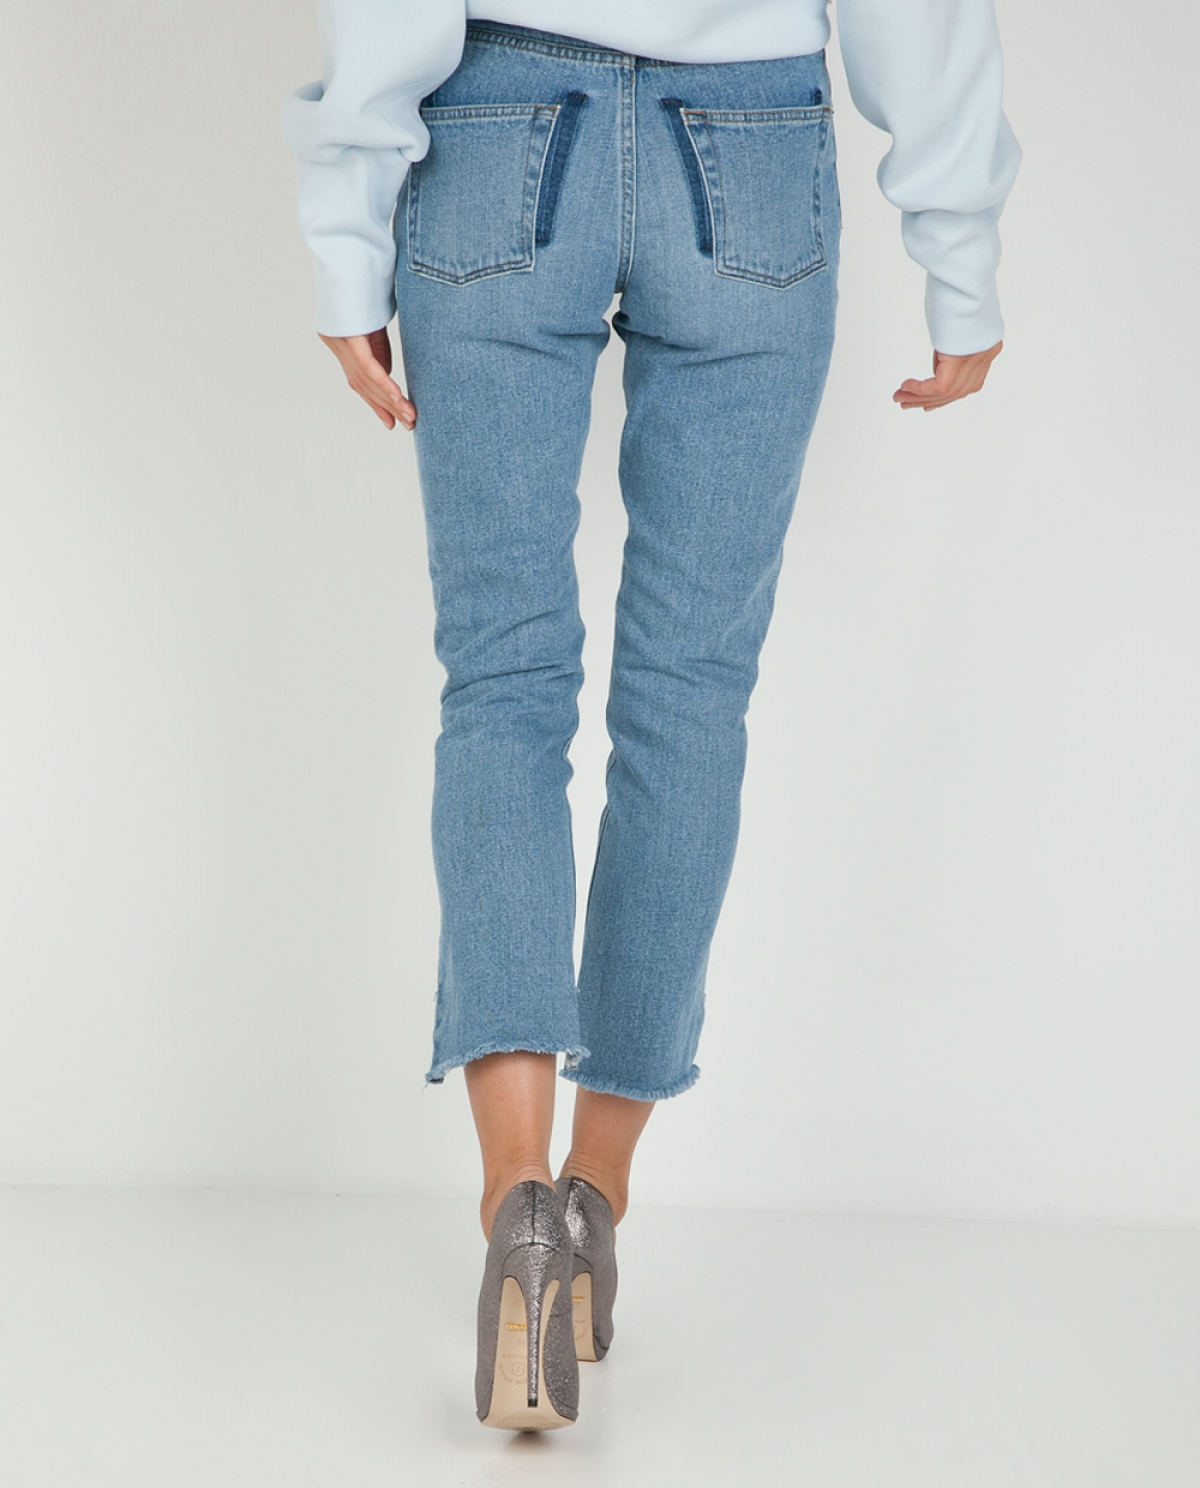 Kelly Remade Jeans